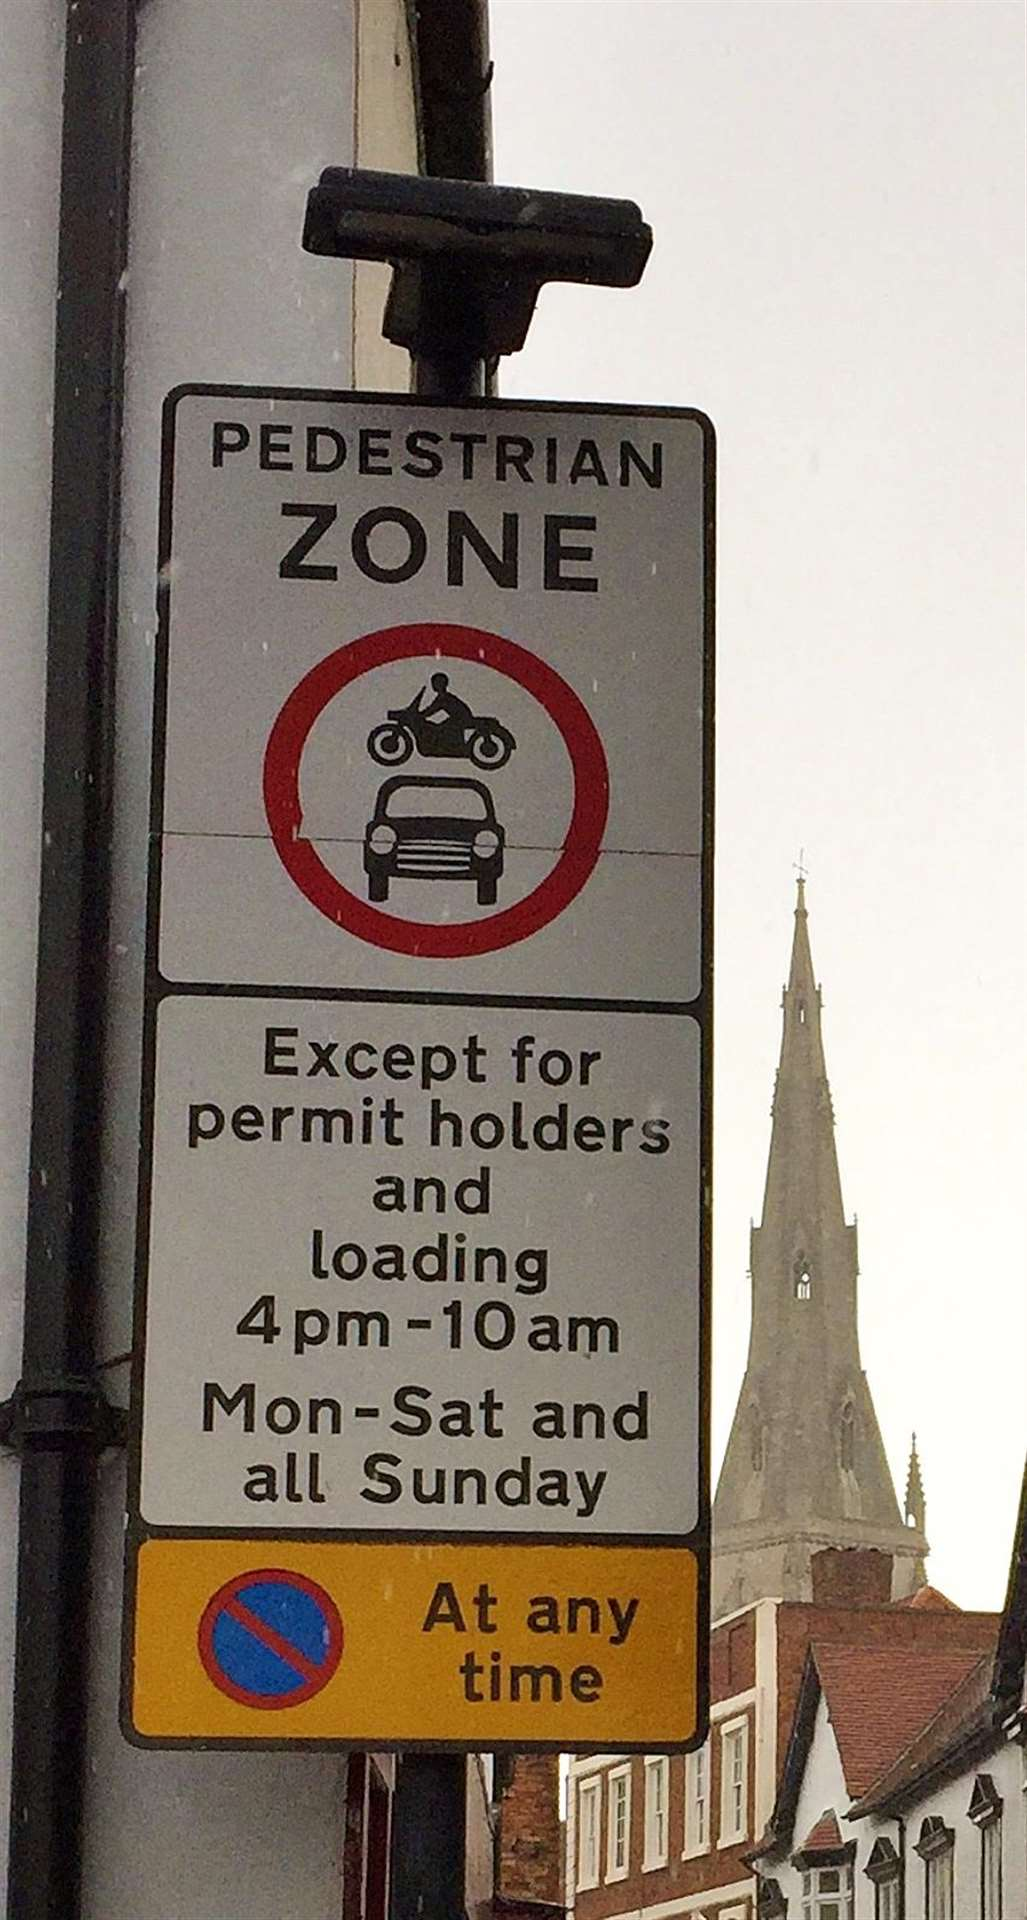 The sign indicating a pedestrian zone on the streets